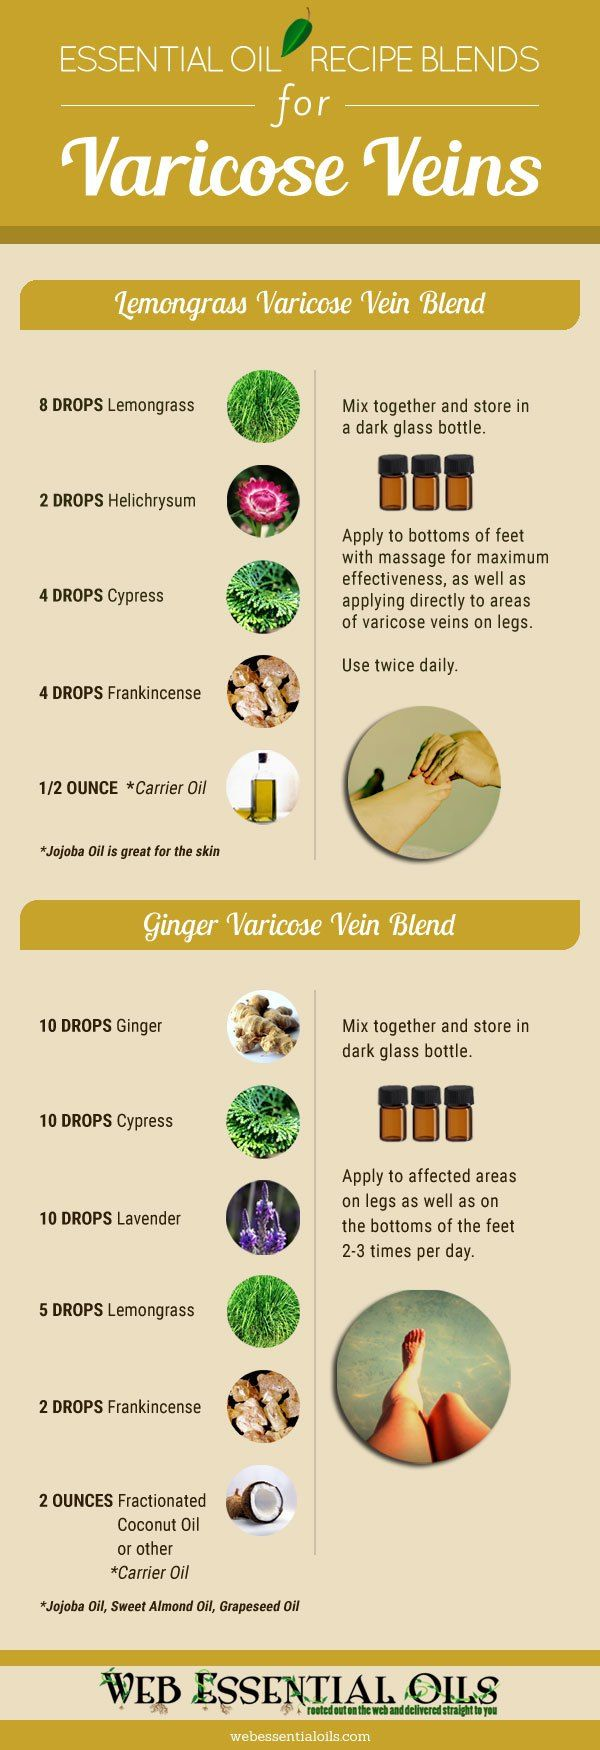 Essential Oil Remedies For Treating Varicose Veins At Home Infographic